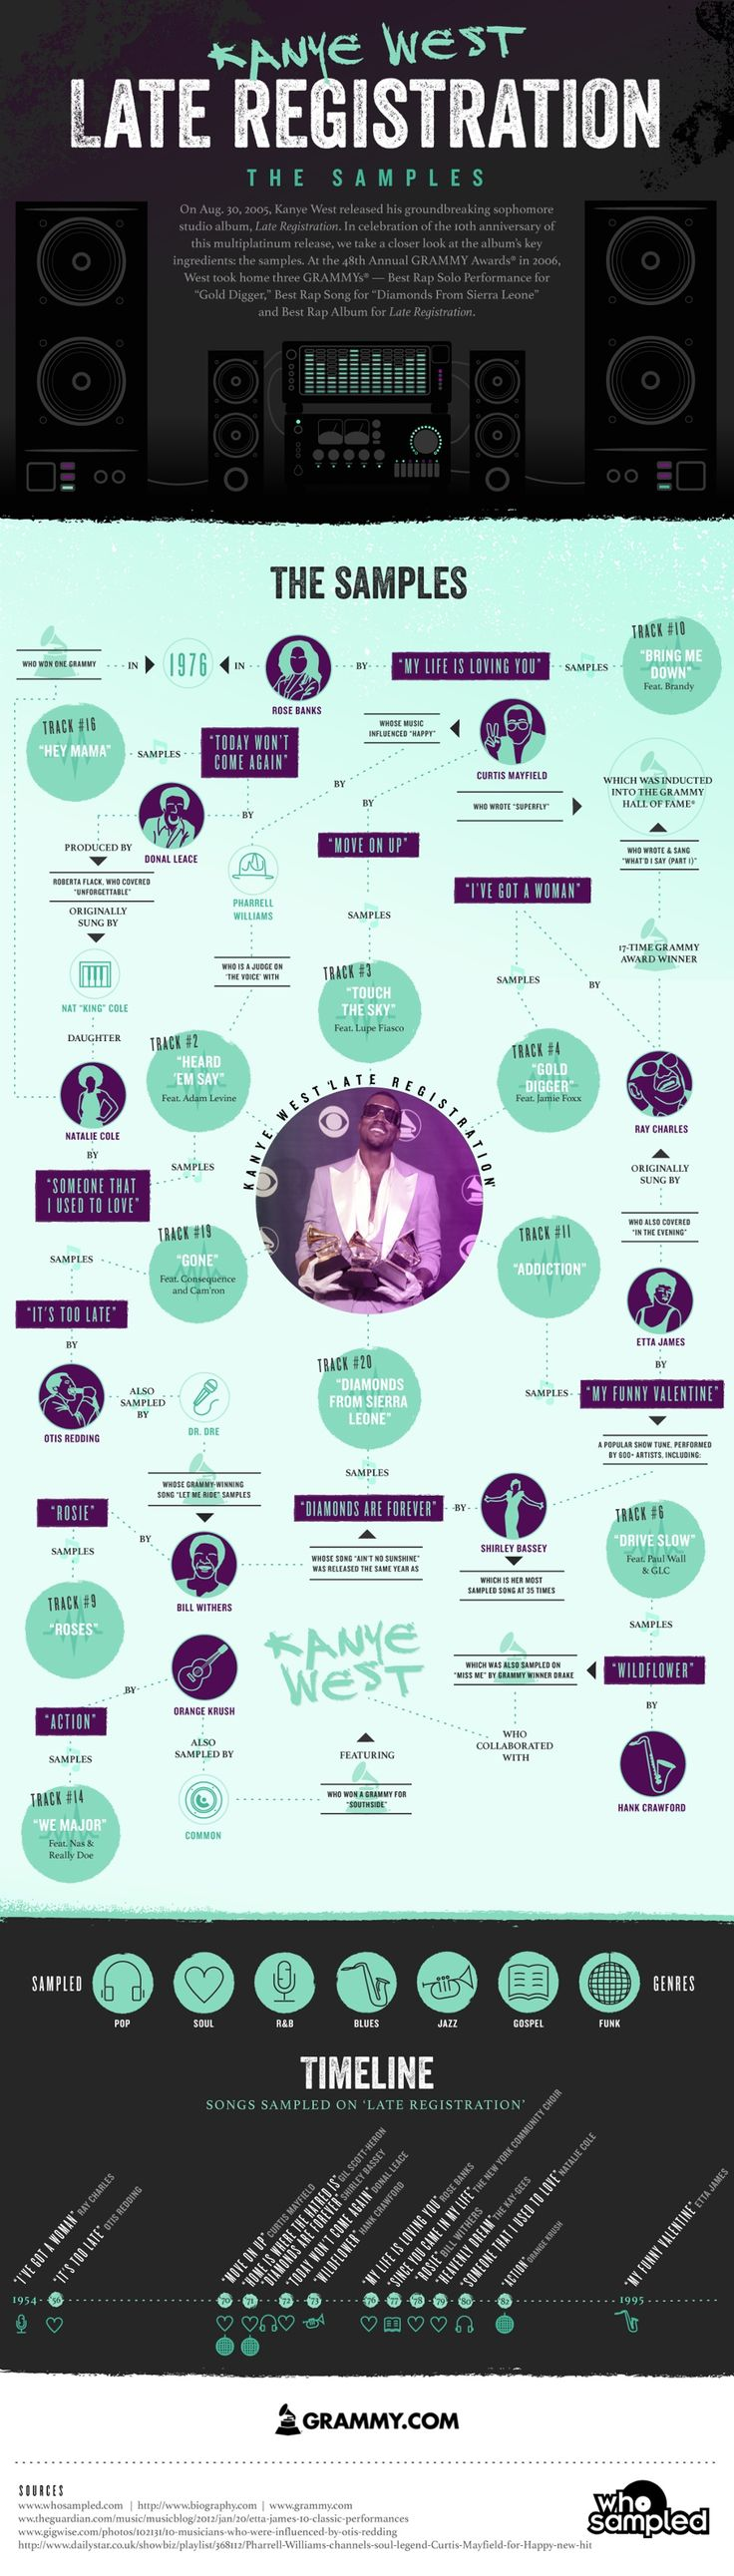 """The Grammy's Created an Awesome Infographic About Kanye West's """"Late Registration"""" 